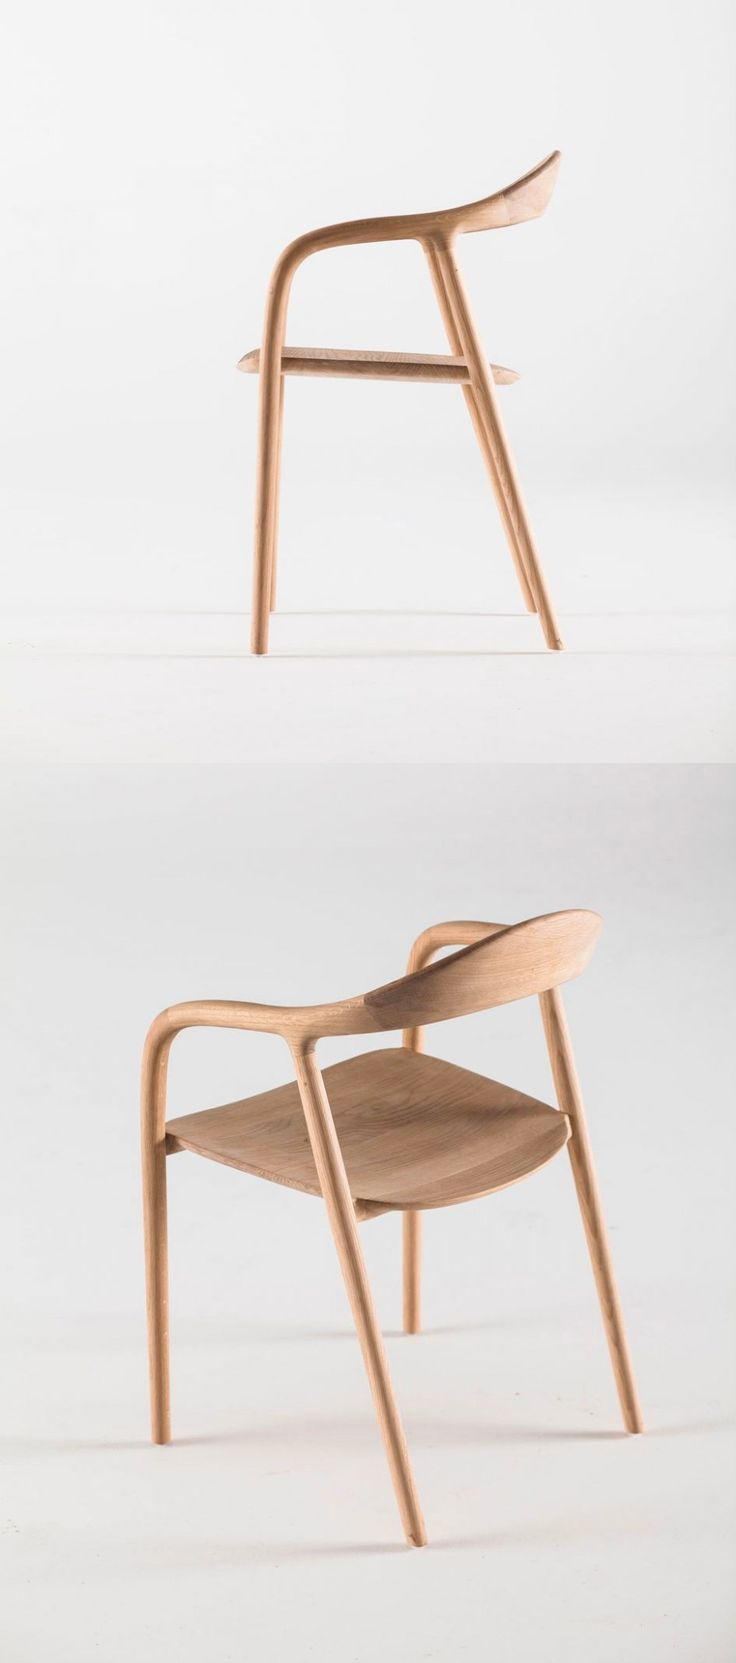 Ever felt your interior could look more artistic? There's a piece of furniture that's as functional as it's creative – the sculptural chair. Crafted out